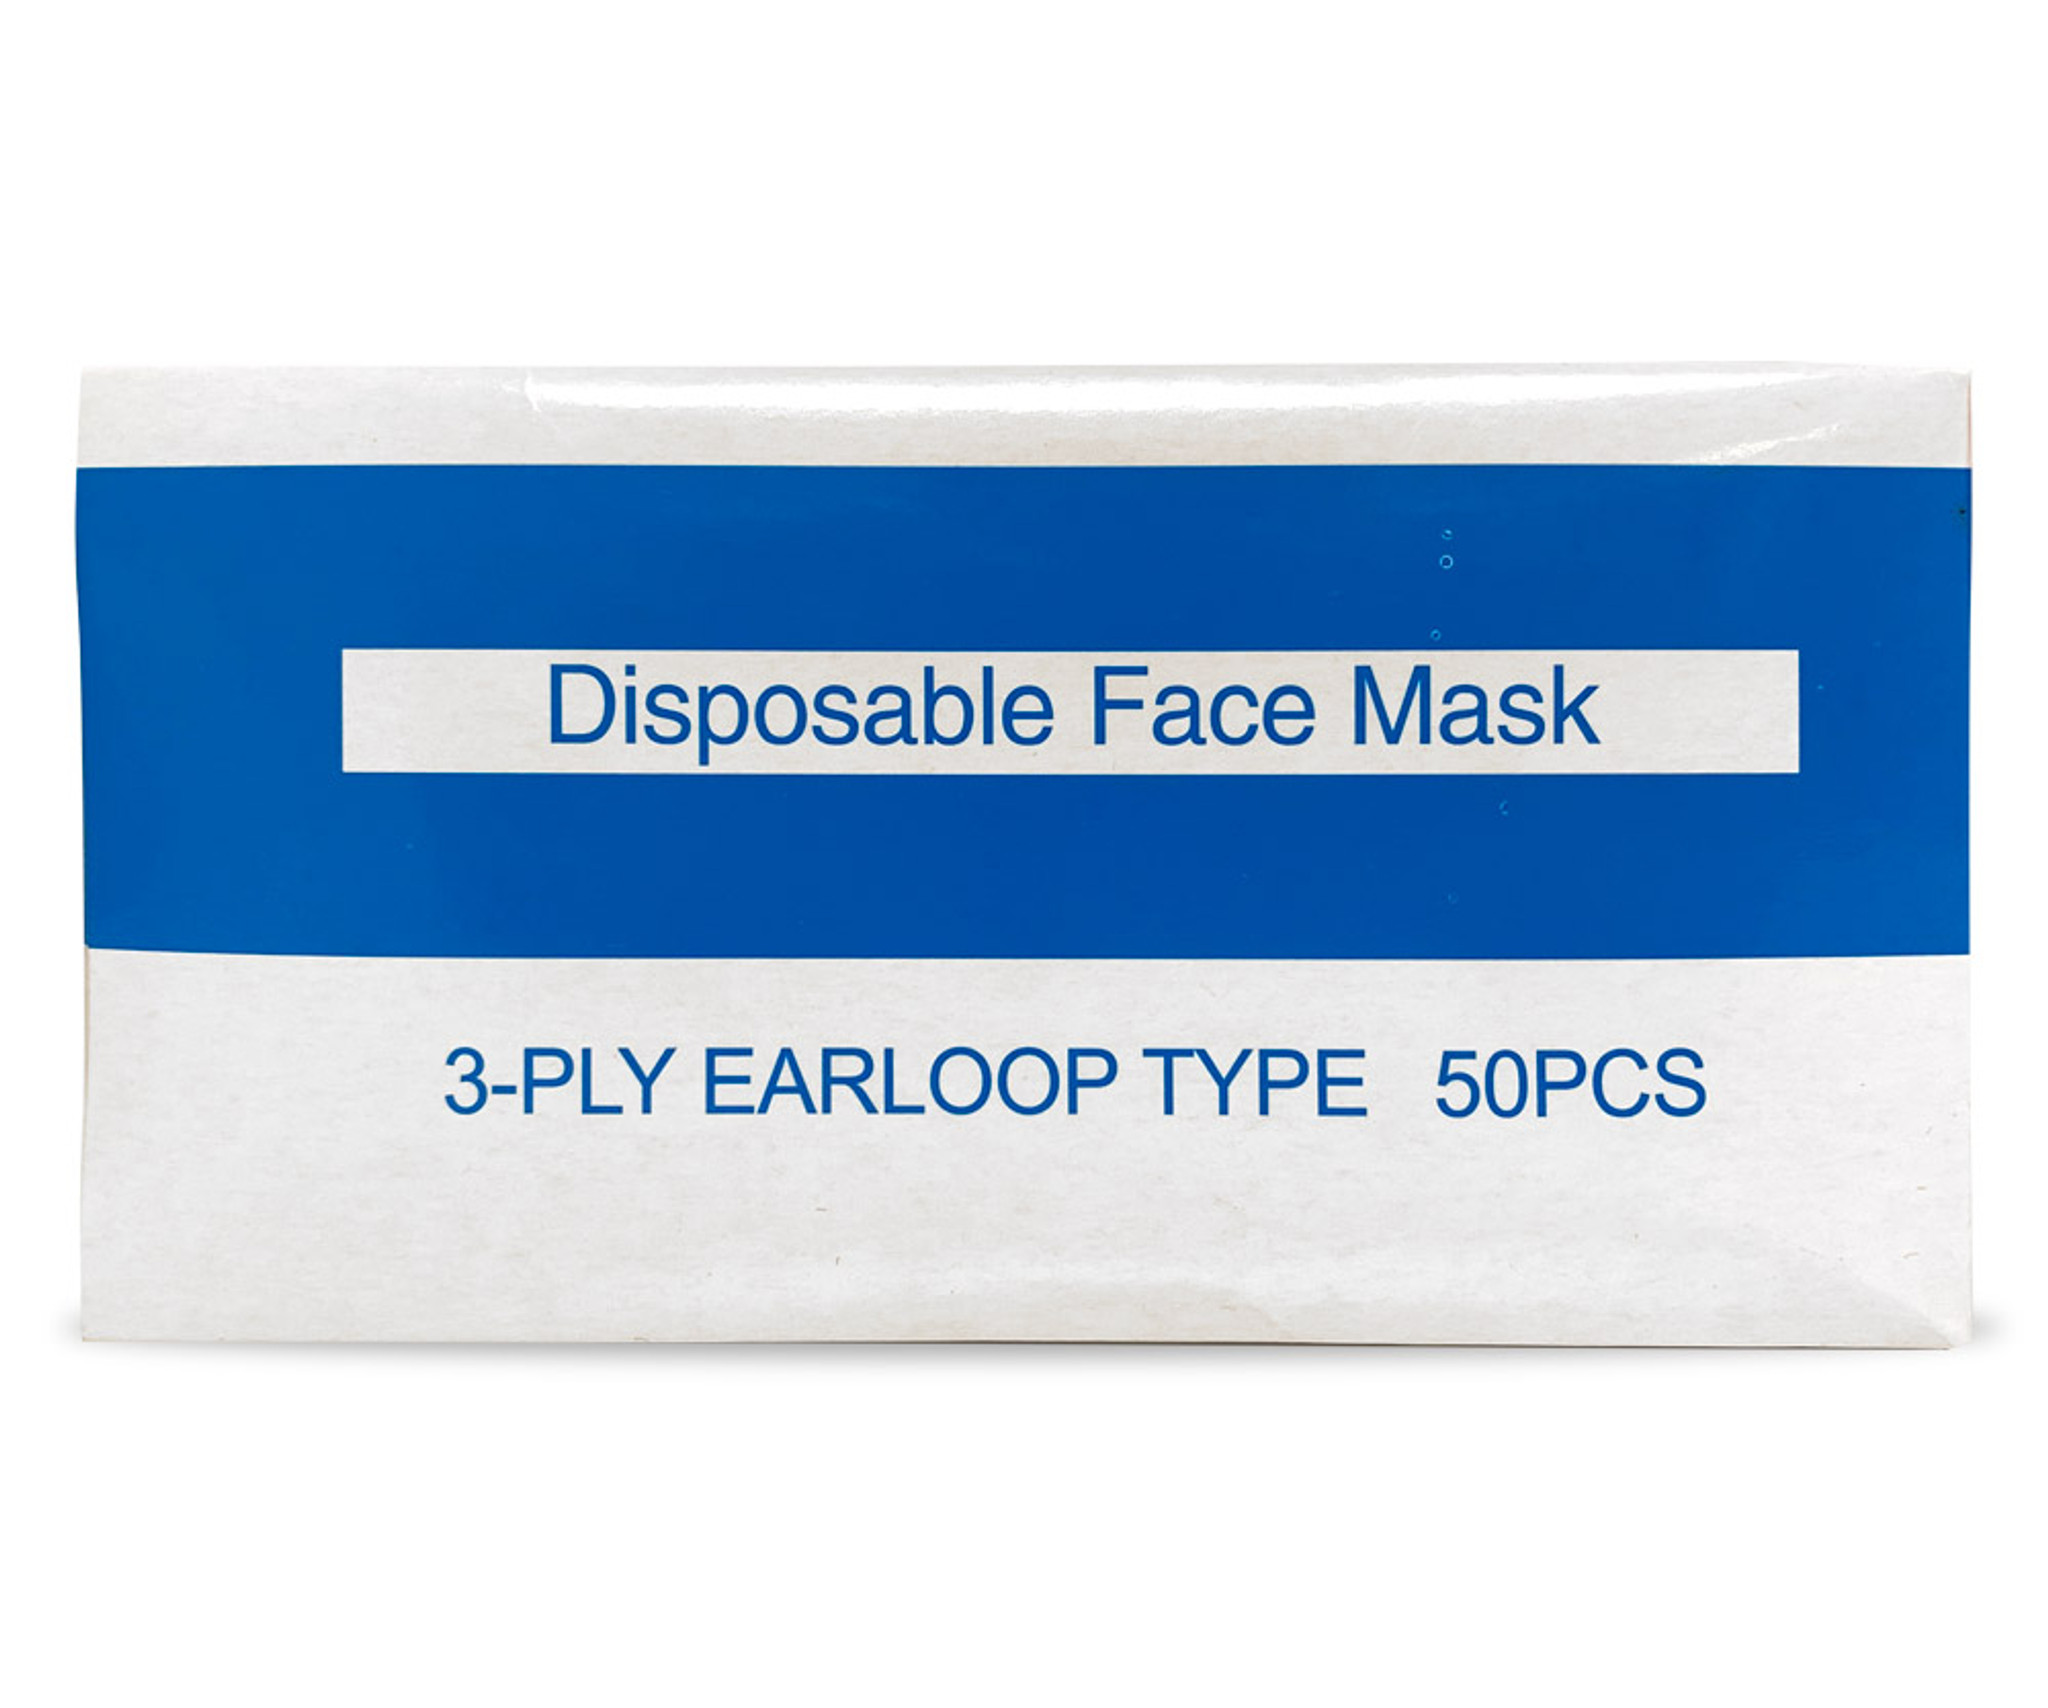 Face Mask - Box with 50 units  $0.60/ea